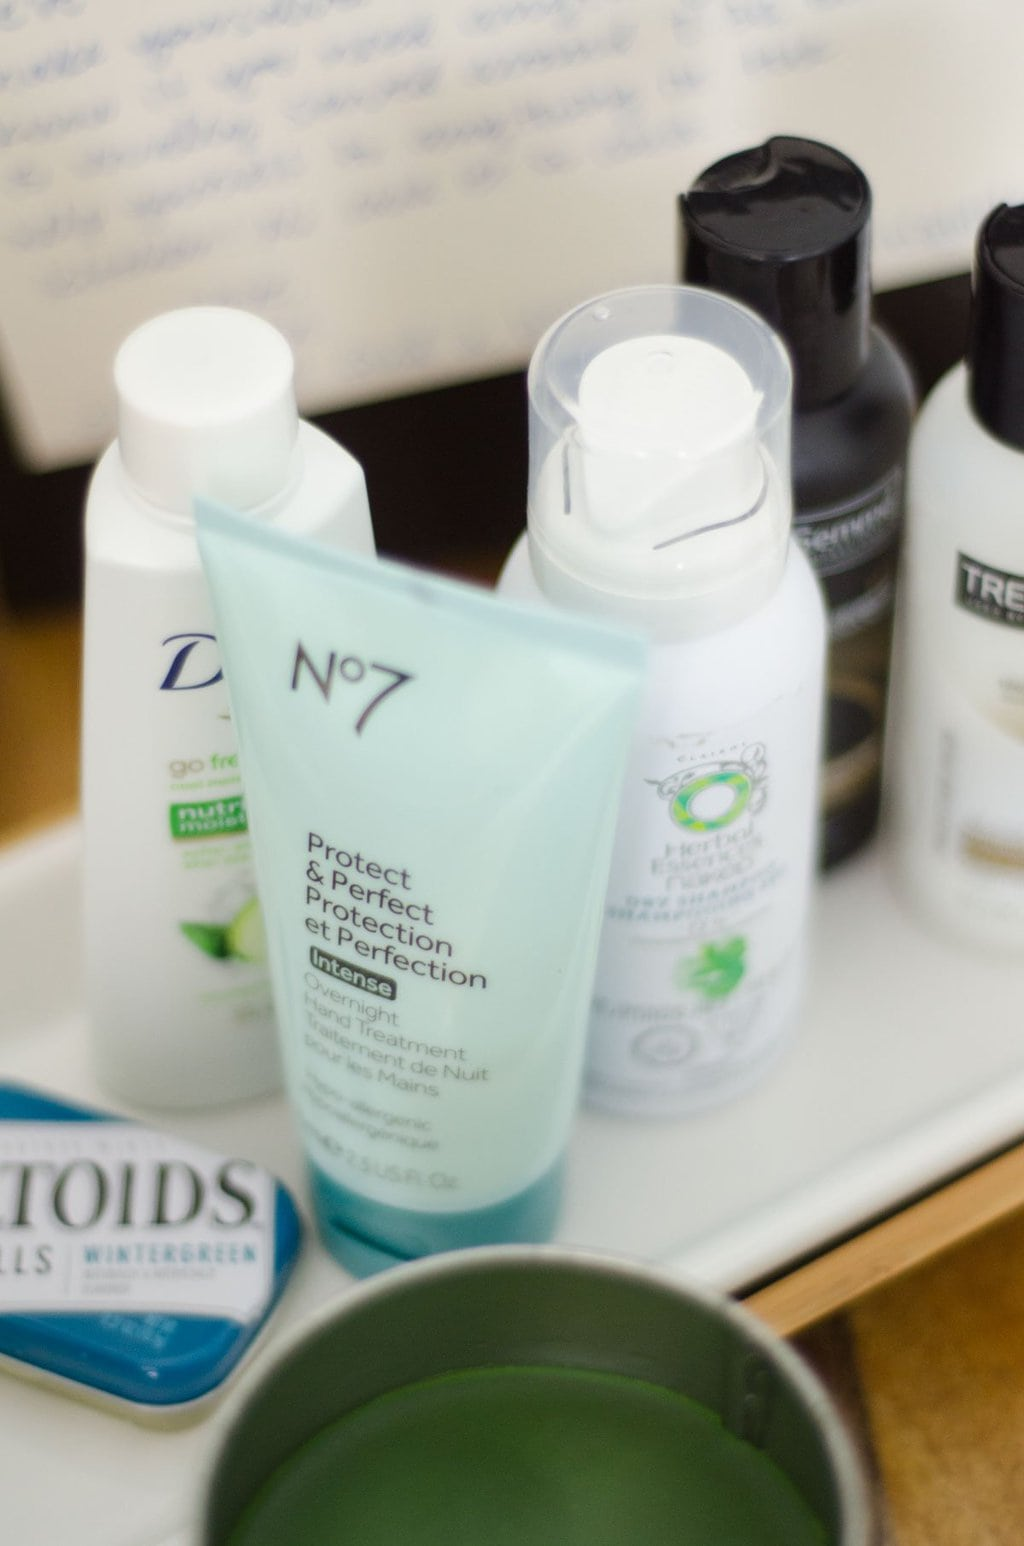 Stock up on travel-sized toiletries for holiday houseguests.